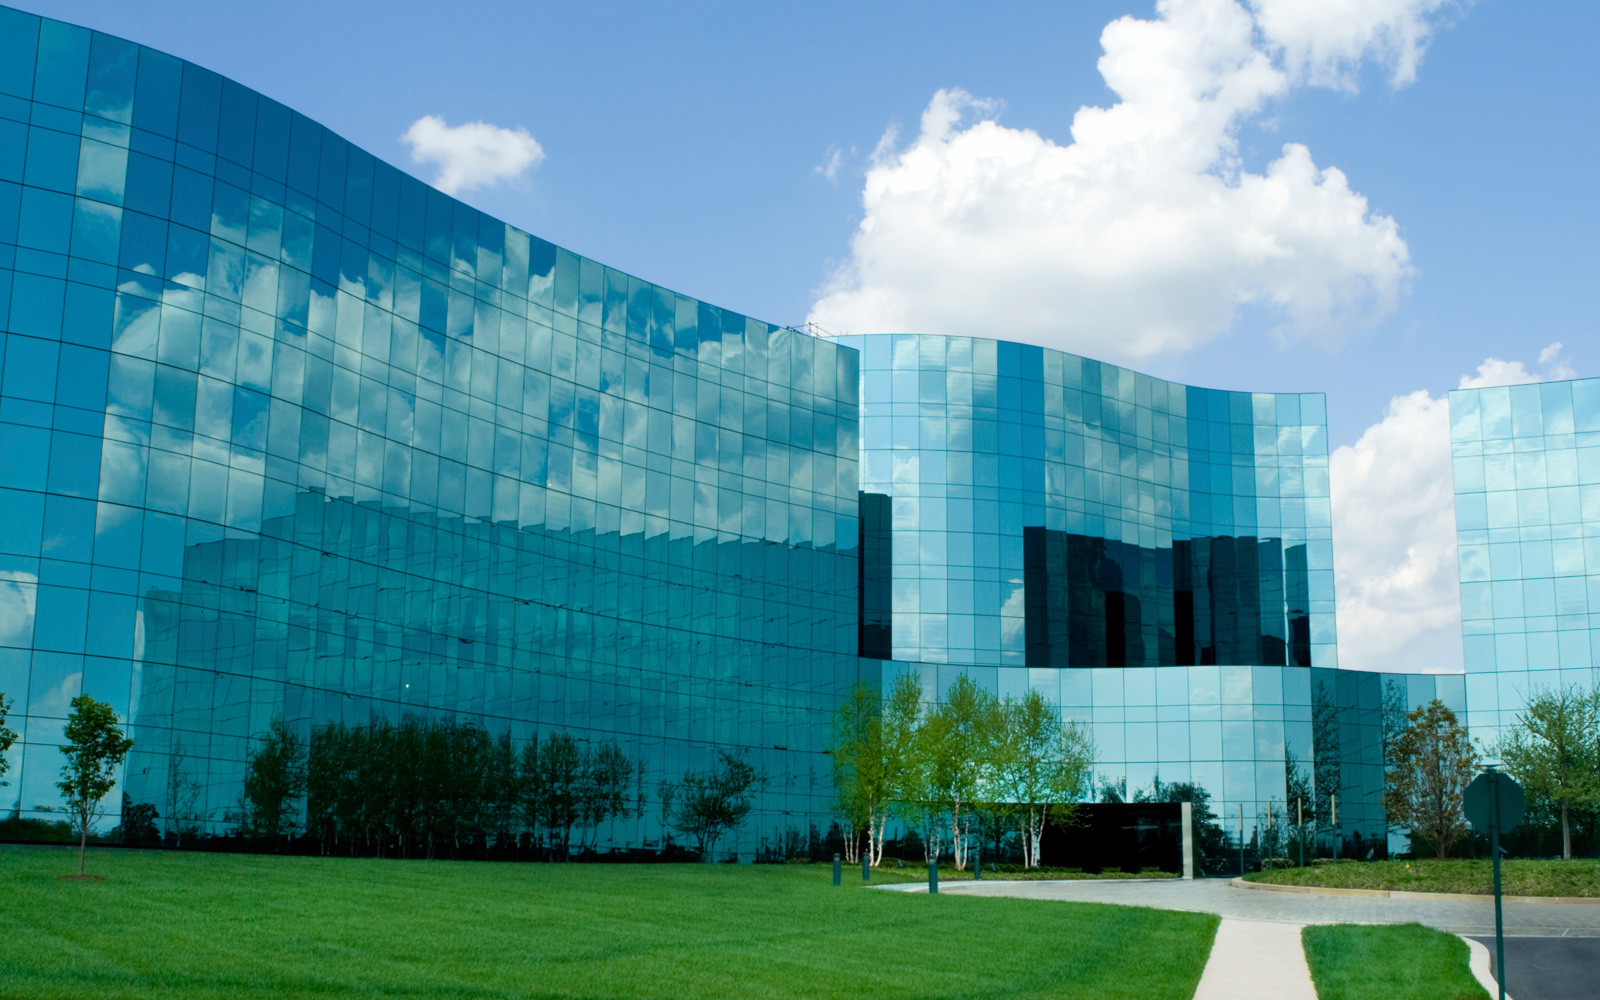 Exterior of large modern office building with tinted glass windows.